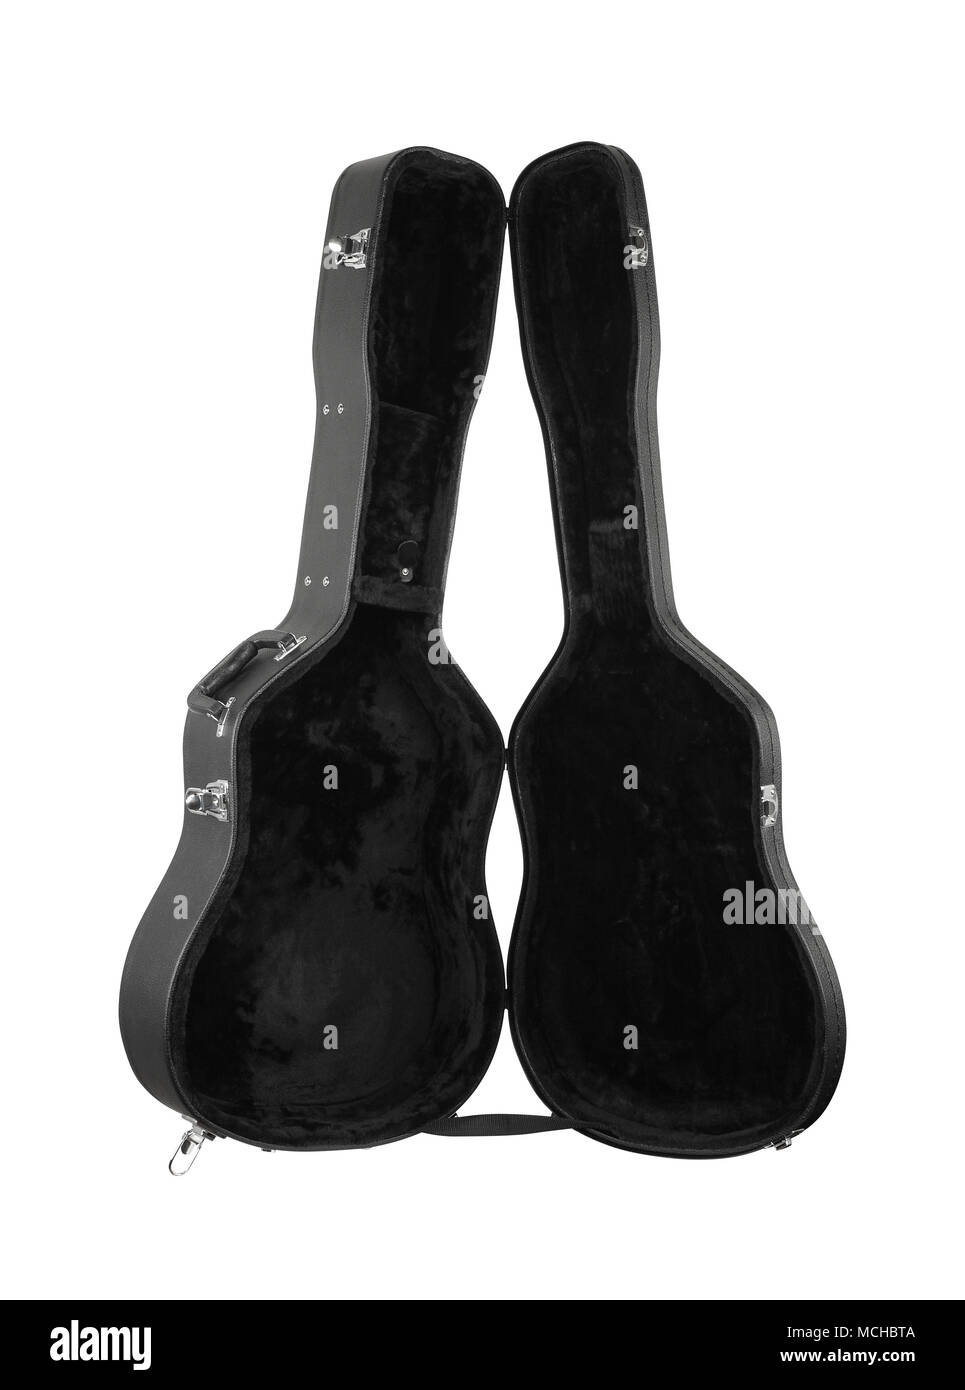 Musical instrument - Open black acoustic guitar hard case on a white background. Isolated - Stock Image